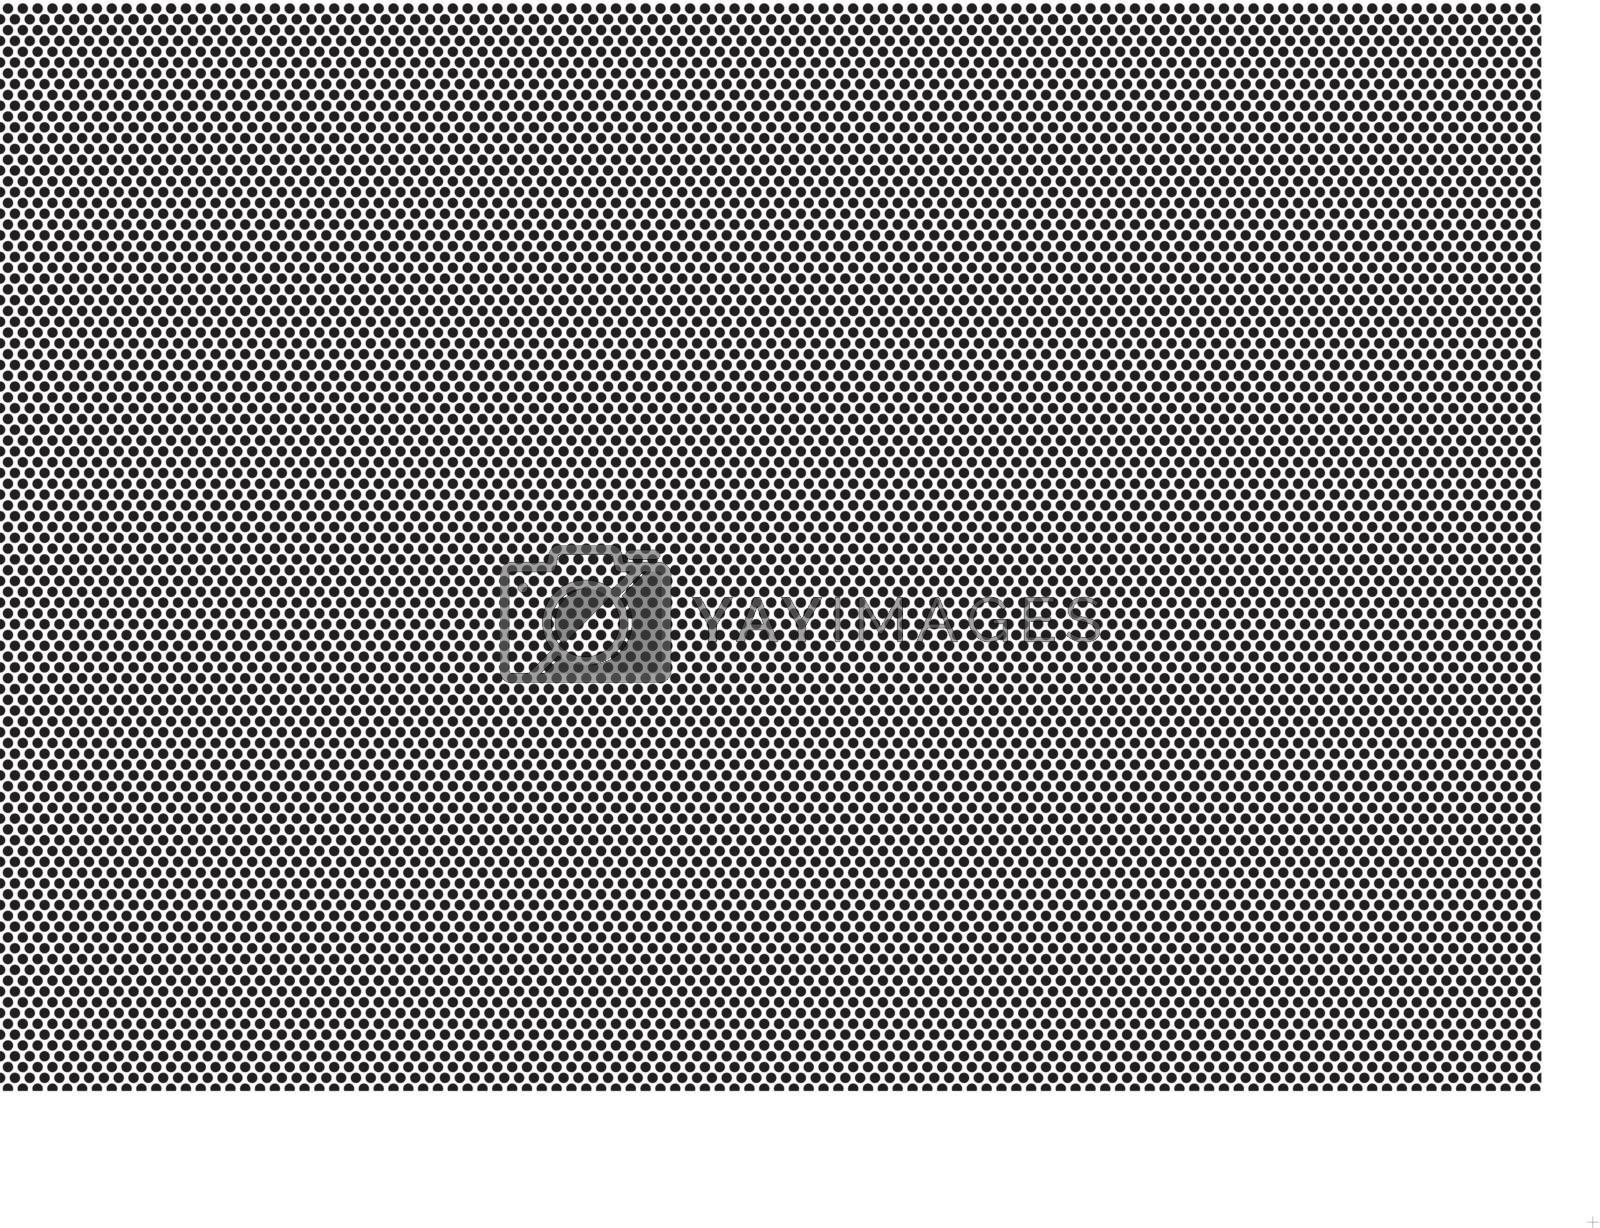 Dotted Texture - Abstract Background Illustration, Vector